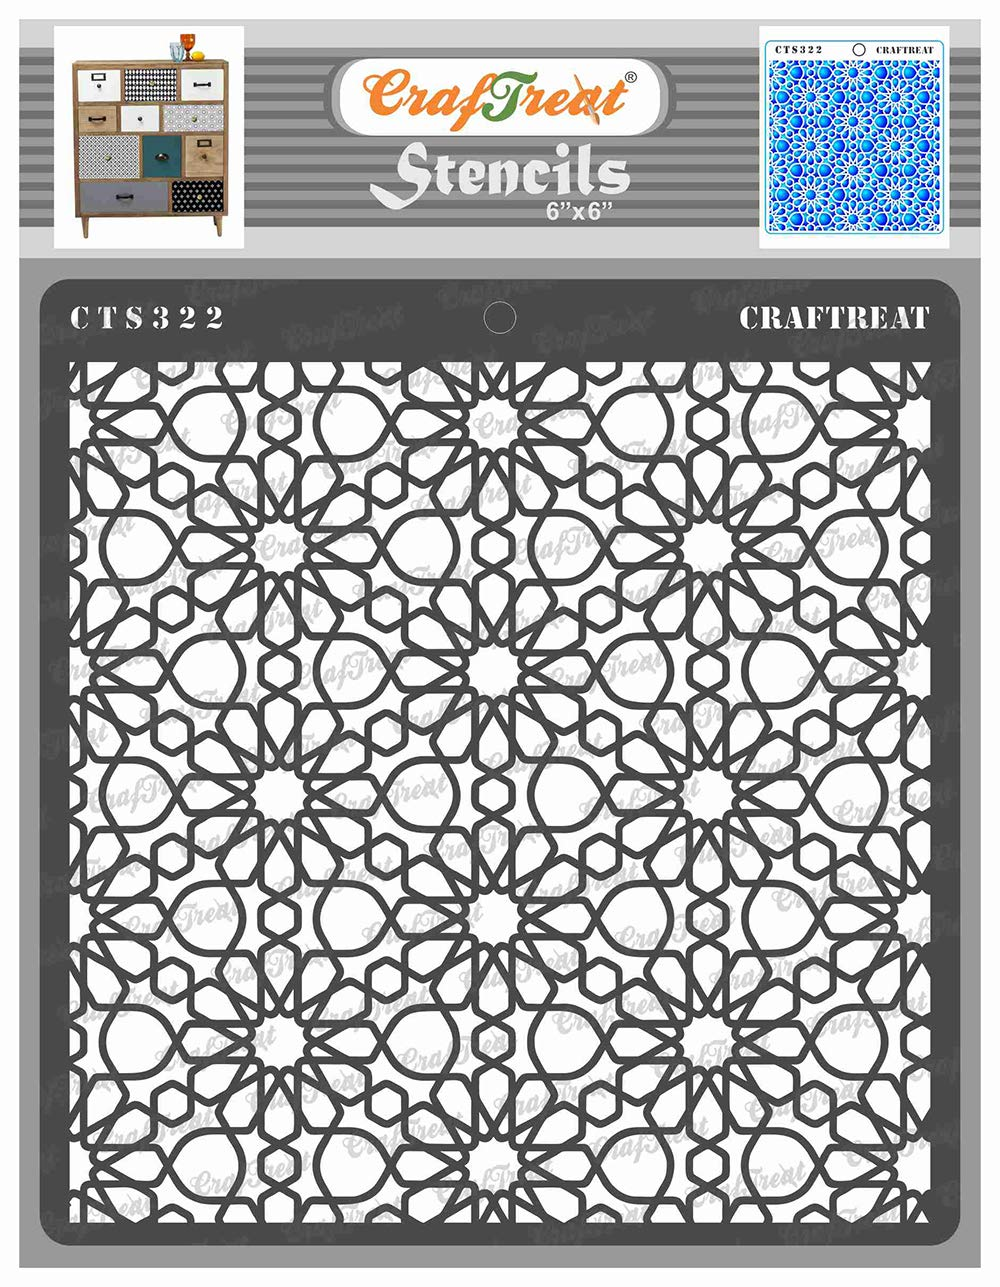 CrafTreat Pattern Stencils for Painting on Wood, Wall, Tile, Canvas, Paper, Fabric and Floor - Arabic Pattern Stencil - 6x6 Inches - Reusable DIY Art and Craft Stencils Pattern for Painting